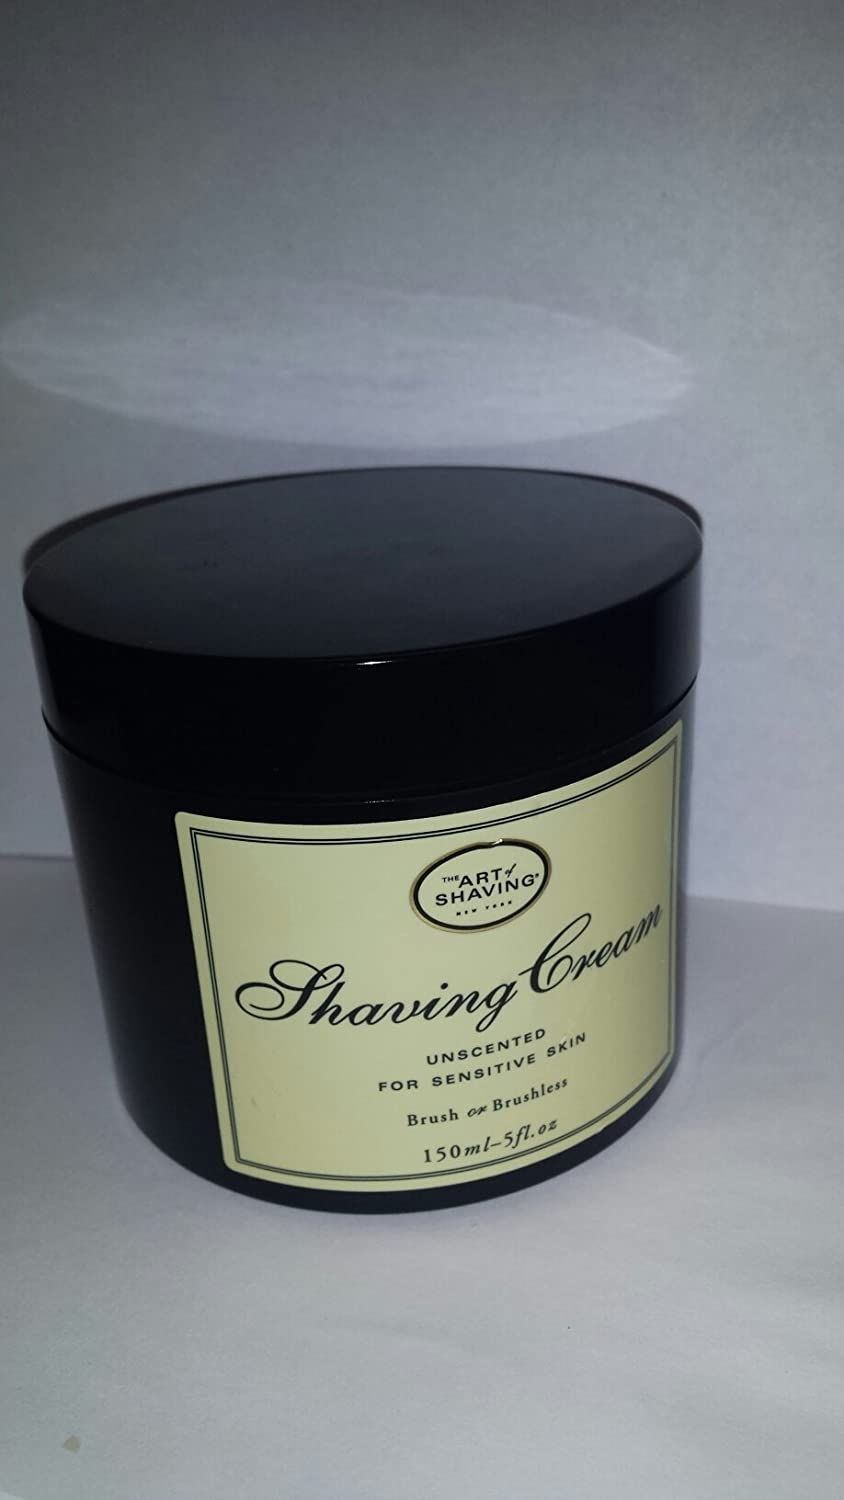 The Art Of Shaving Unscented Shave Cream For Sensitive Skin 5 Oz by The Art of Shaving 670535300007